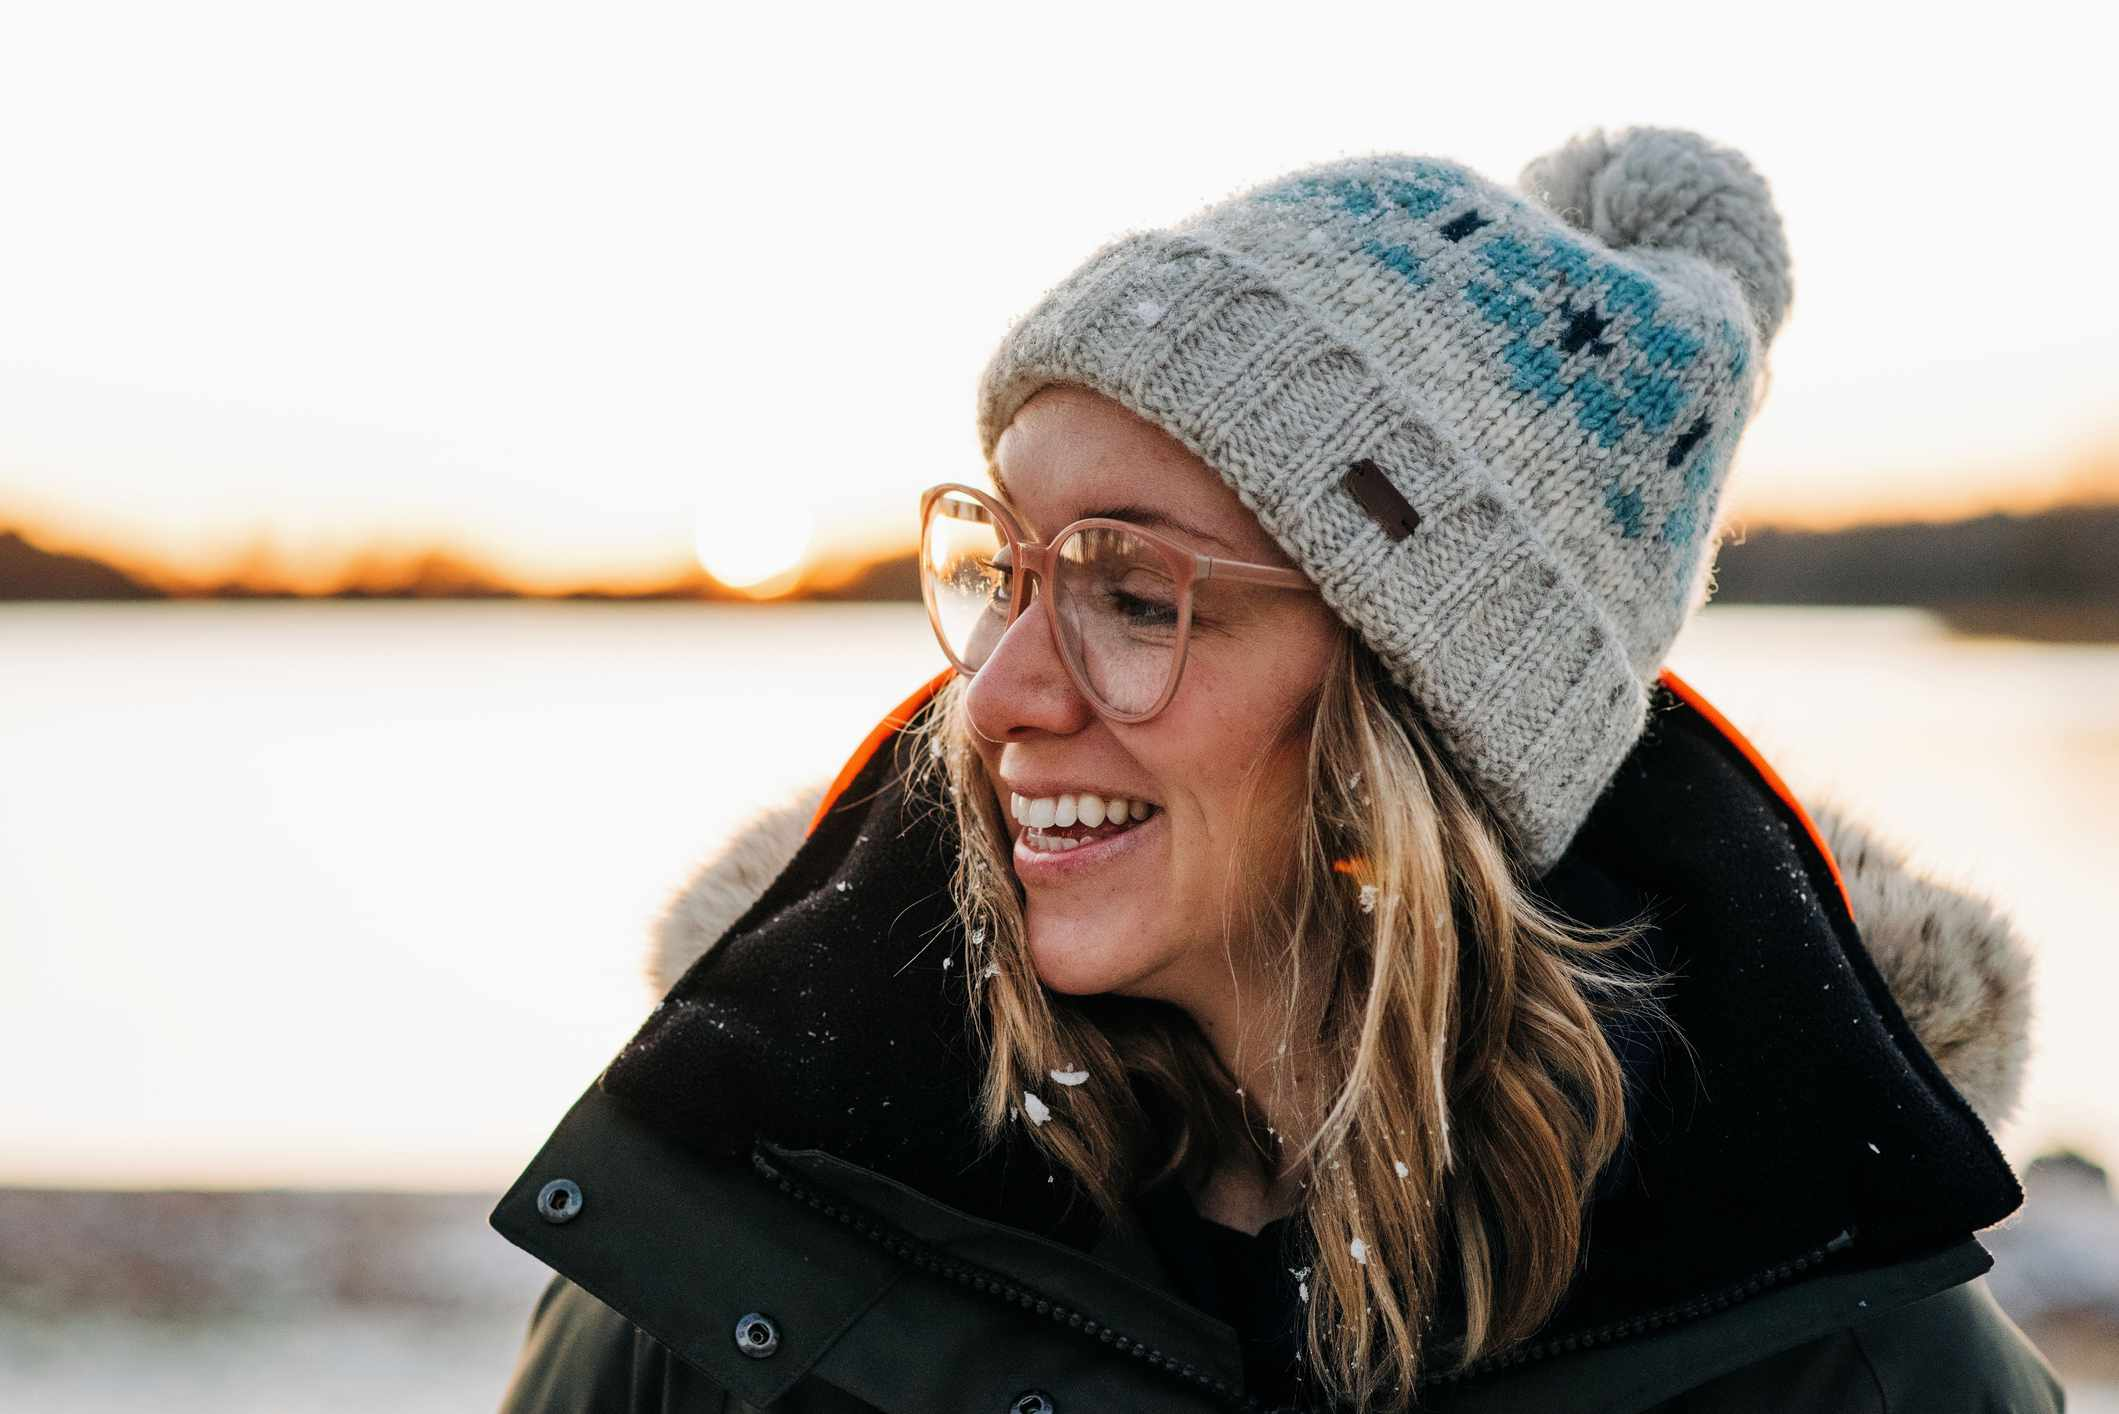 A white woman wears a hat with pom pom outside in the winter.